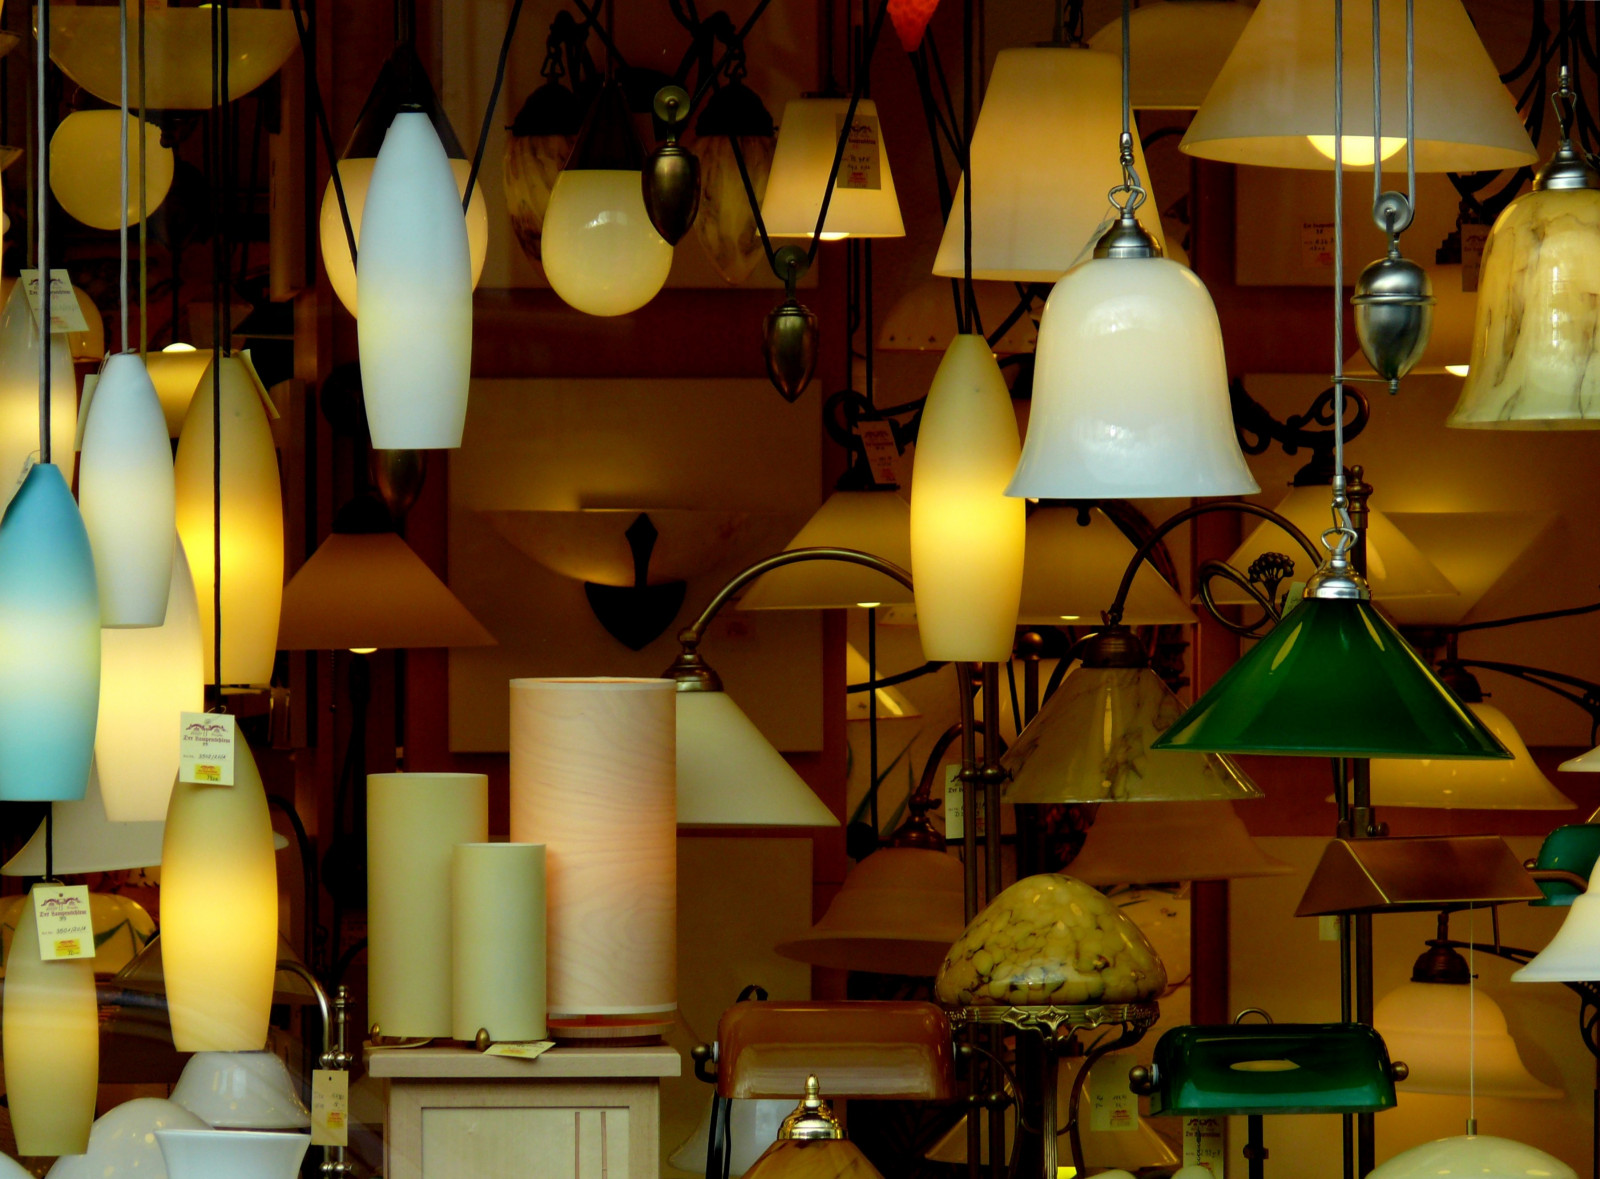 Design Küchenlampe Wallpaper : Abstract, Shop, Munich, Munchen, Design, Lampe, Illumination, Shopwindow, Lamps, Beleuchtung, Lampen, Lampenladen, Fz50 3597x2652 - - 1054846 - Hd Wallpapers - Wallhere